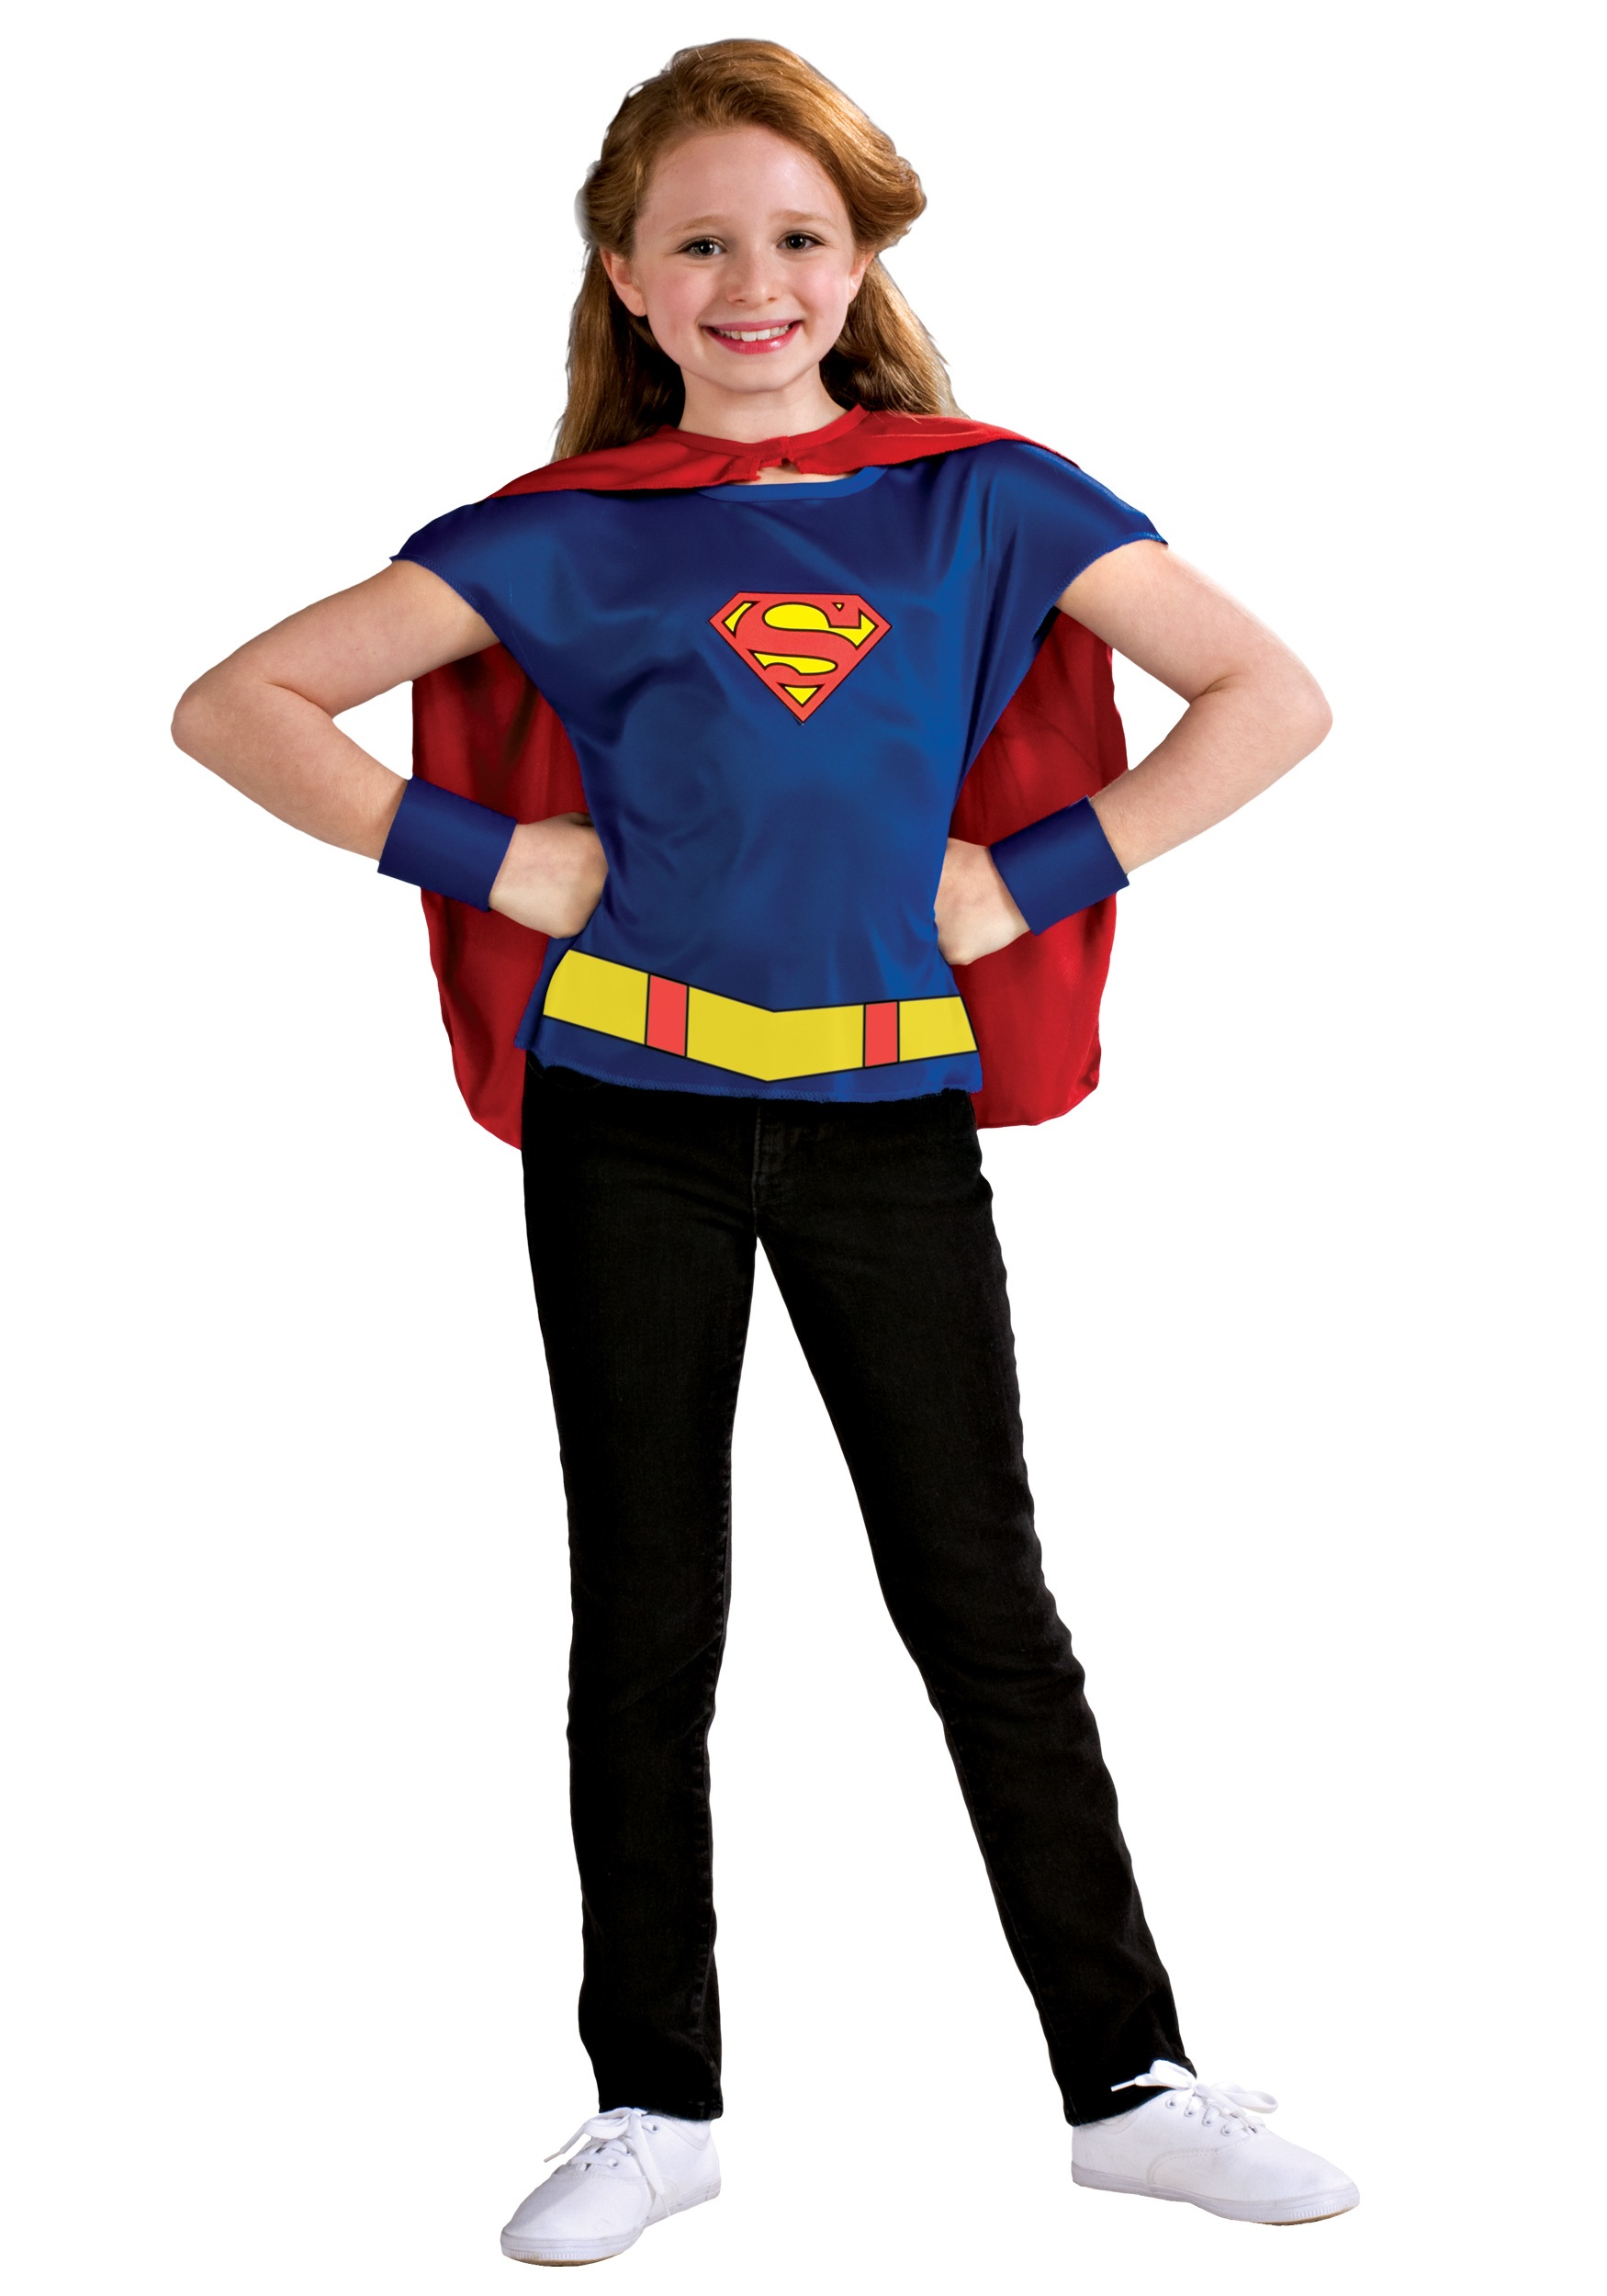 Supergirl Costume Set  sc 1 st  Halloween Costumes & Supergirl Costume Set - Halloween Costumes